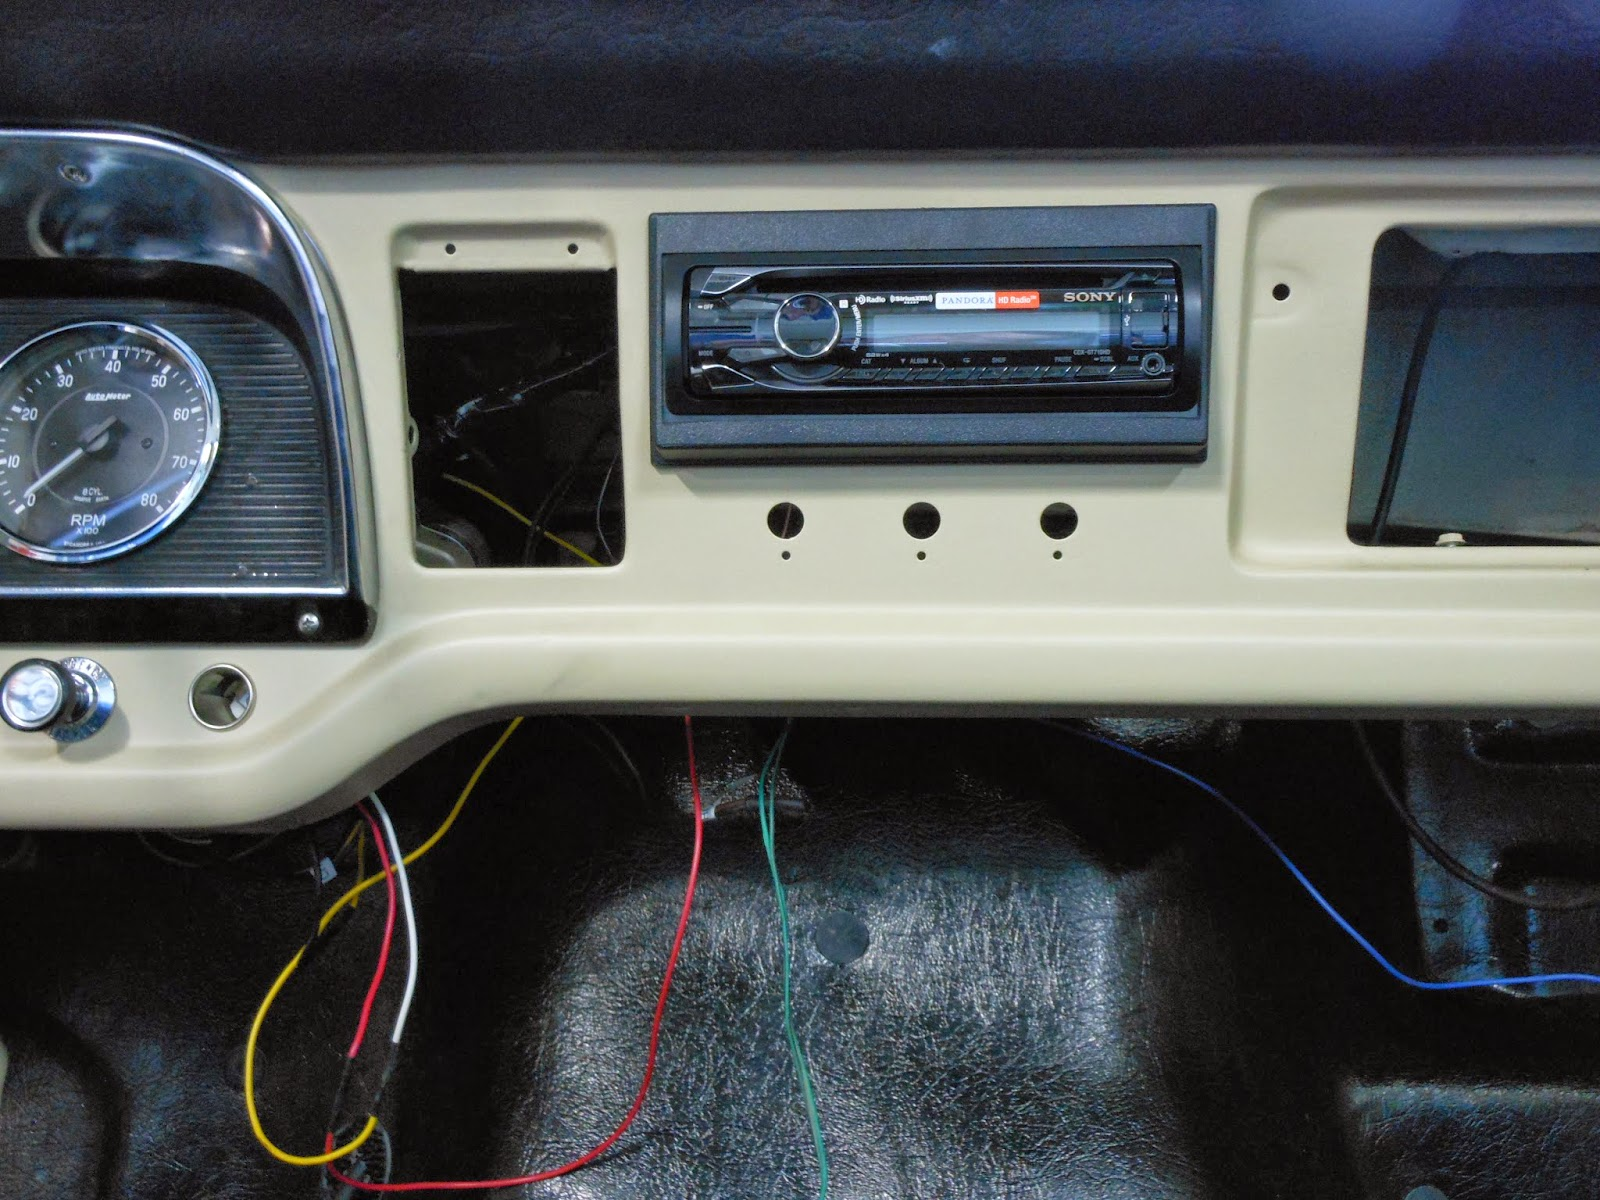 72 cub cadet wiring diagram html with 1967 Ford F100 Radio Face Plate on 1967 Ford F100 Radio Face Plate together with Mahindra 7 Ft Rotary Cutter Parts moreover Wiringdiagrams additionally Scag Belt Diagrams as well 1970s Ford Tractor Wiring Diagram.